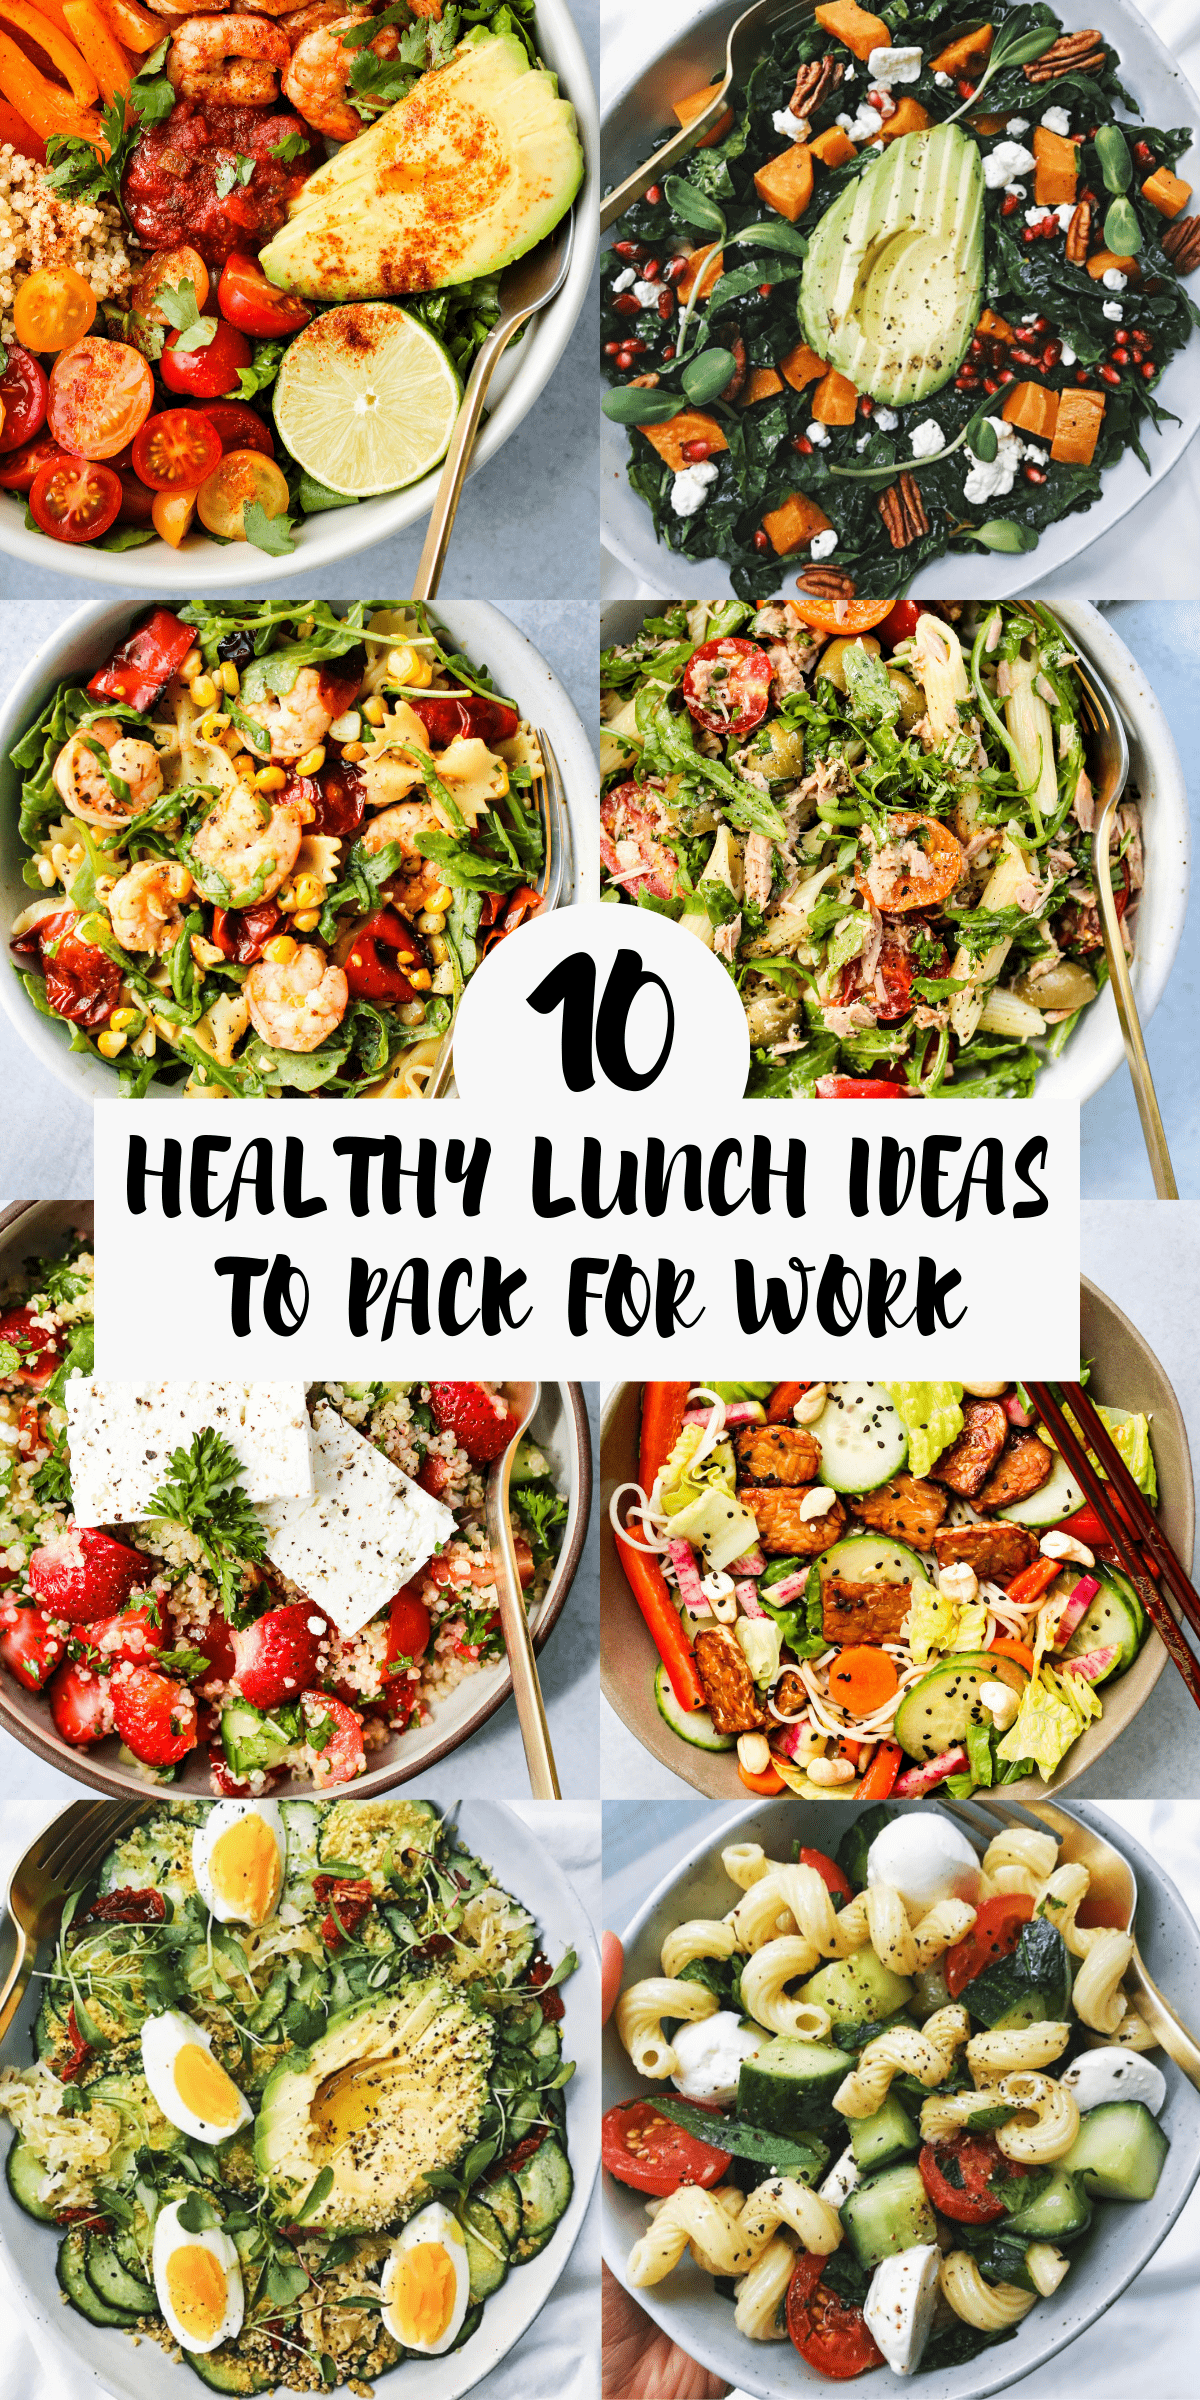 18 Healthy Lunch Ideas To Pack For Work Walder Wellness Dietitian